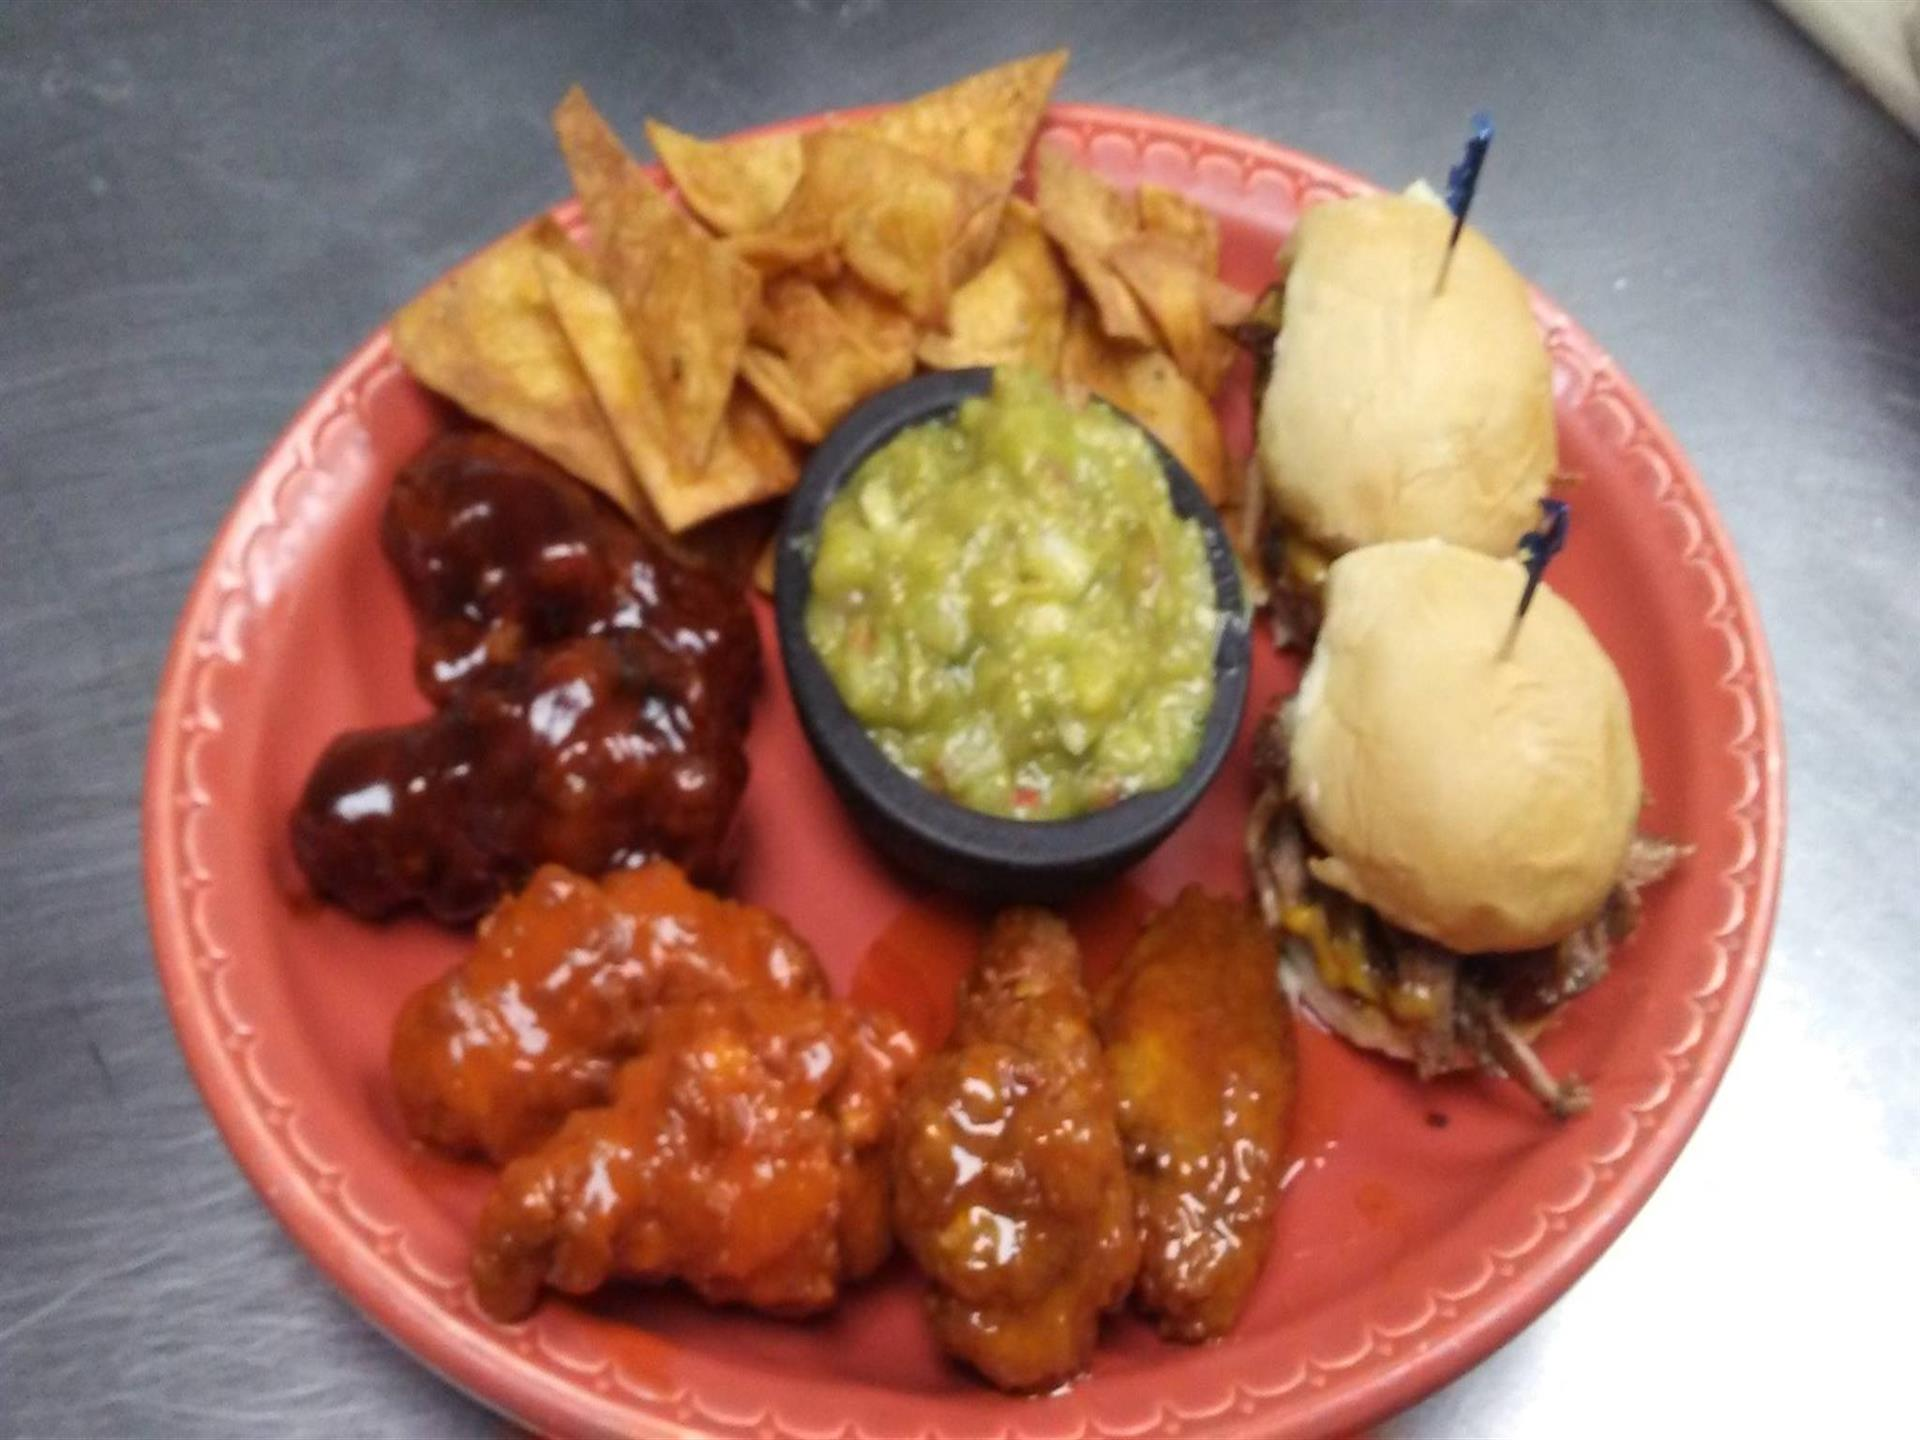 Plate of two sliders, BBQ wings, buffalo wings, and guacamole with chips